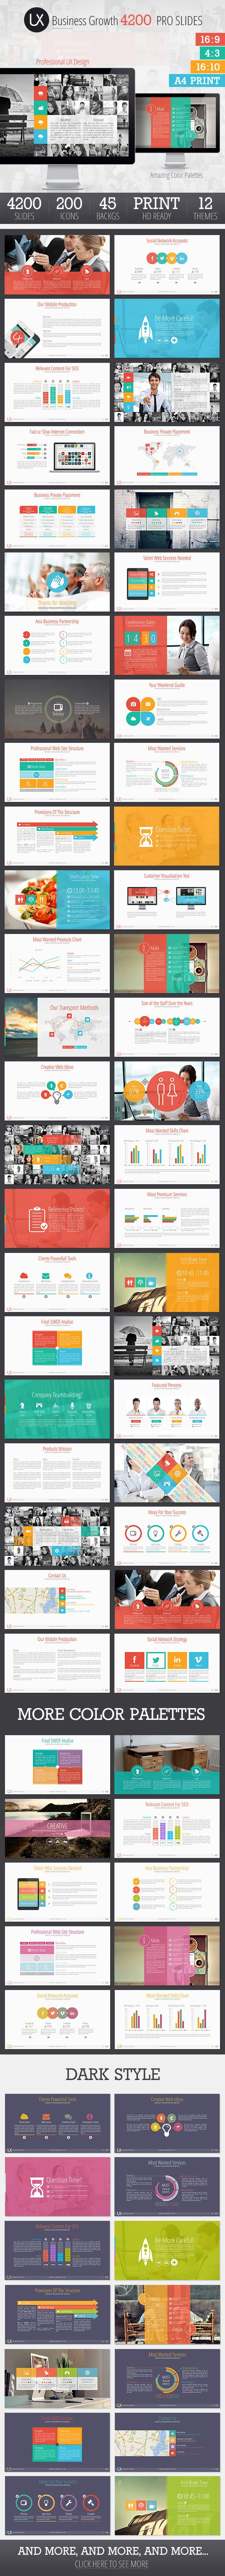 ux design presentation template | business powerpoint templates, Presentation templates